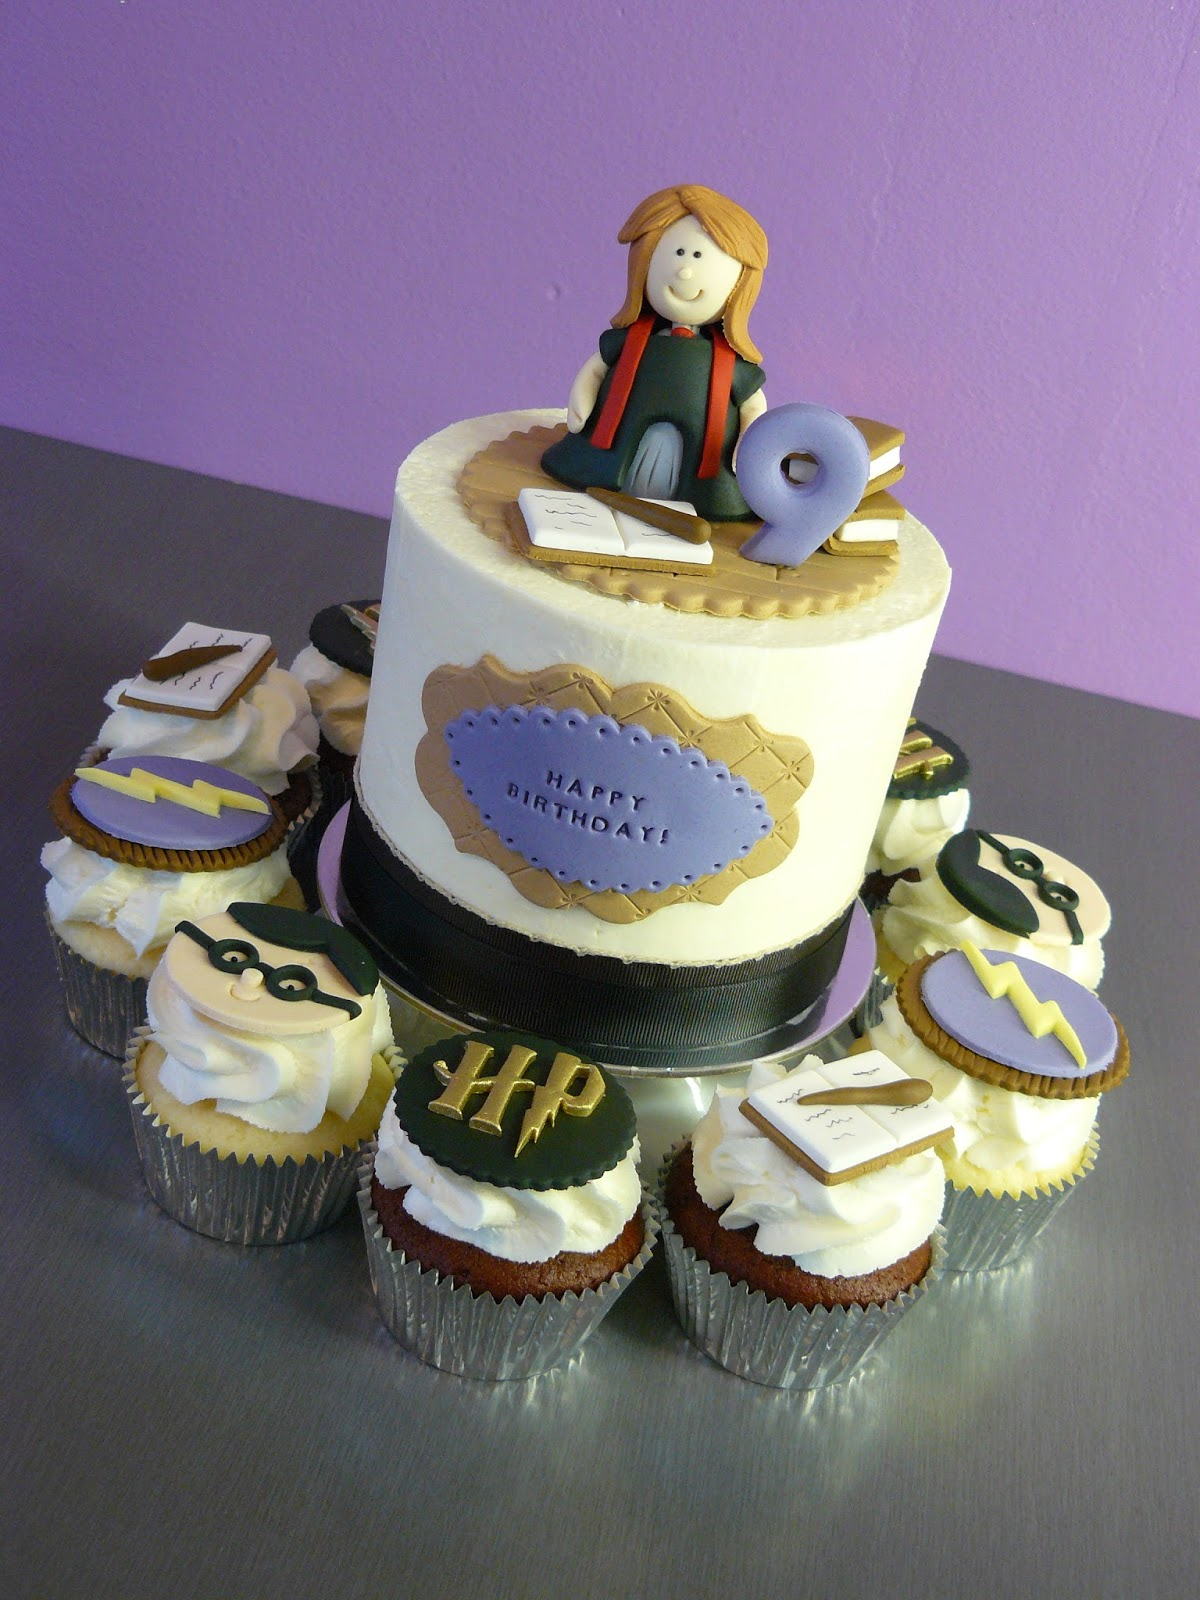 The Cup Cake Taste Brisbane Cupcakes Harry Potter Cake and Cupcakes